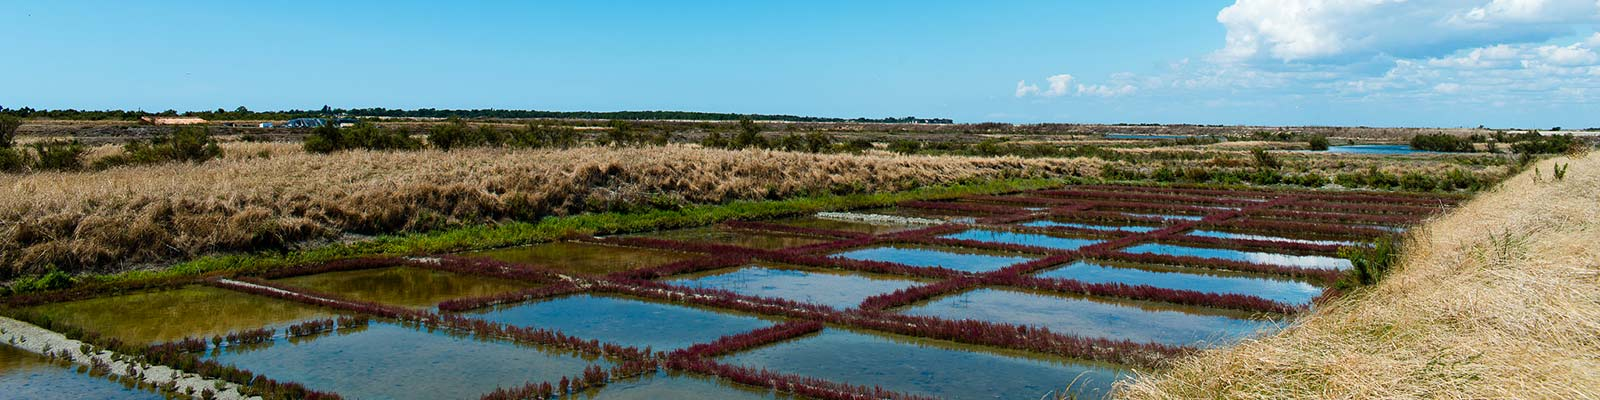 Visit the Ecomuseum of the Salt Marshes